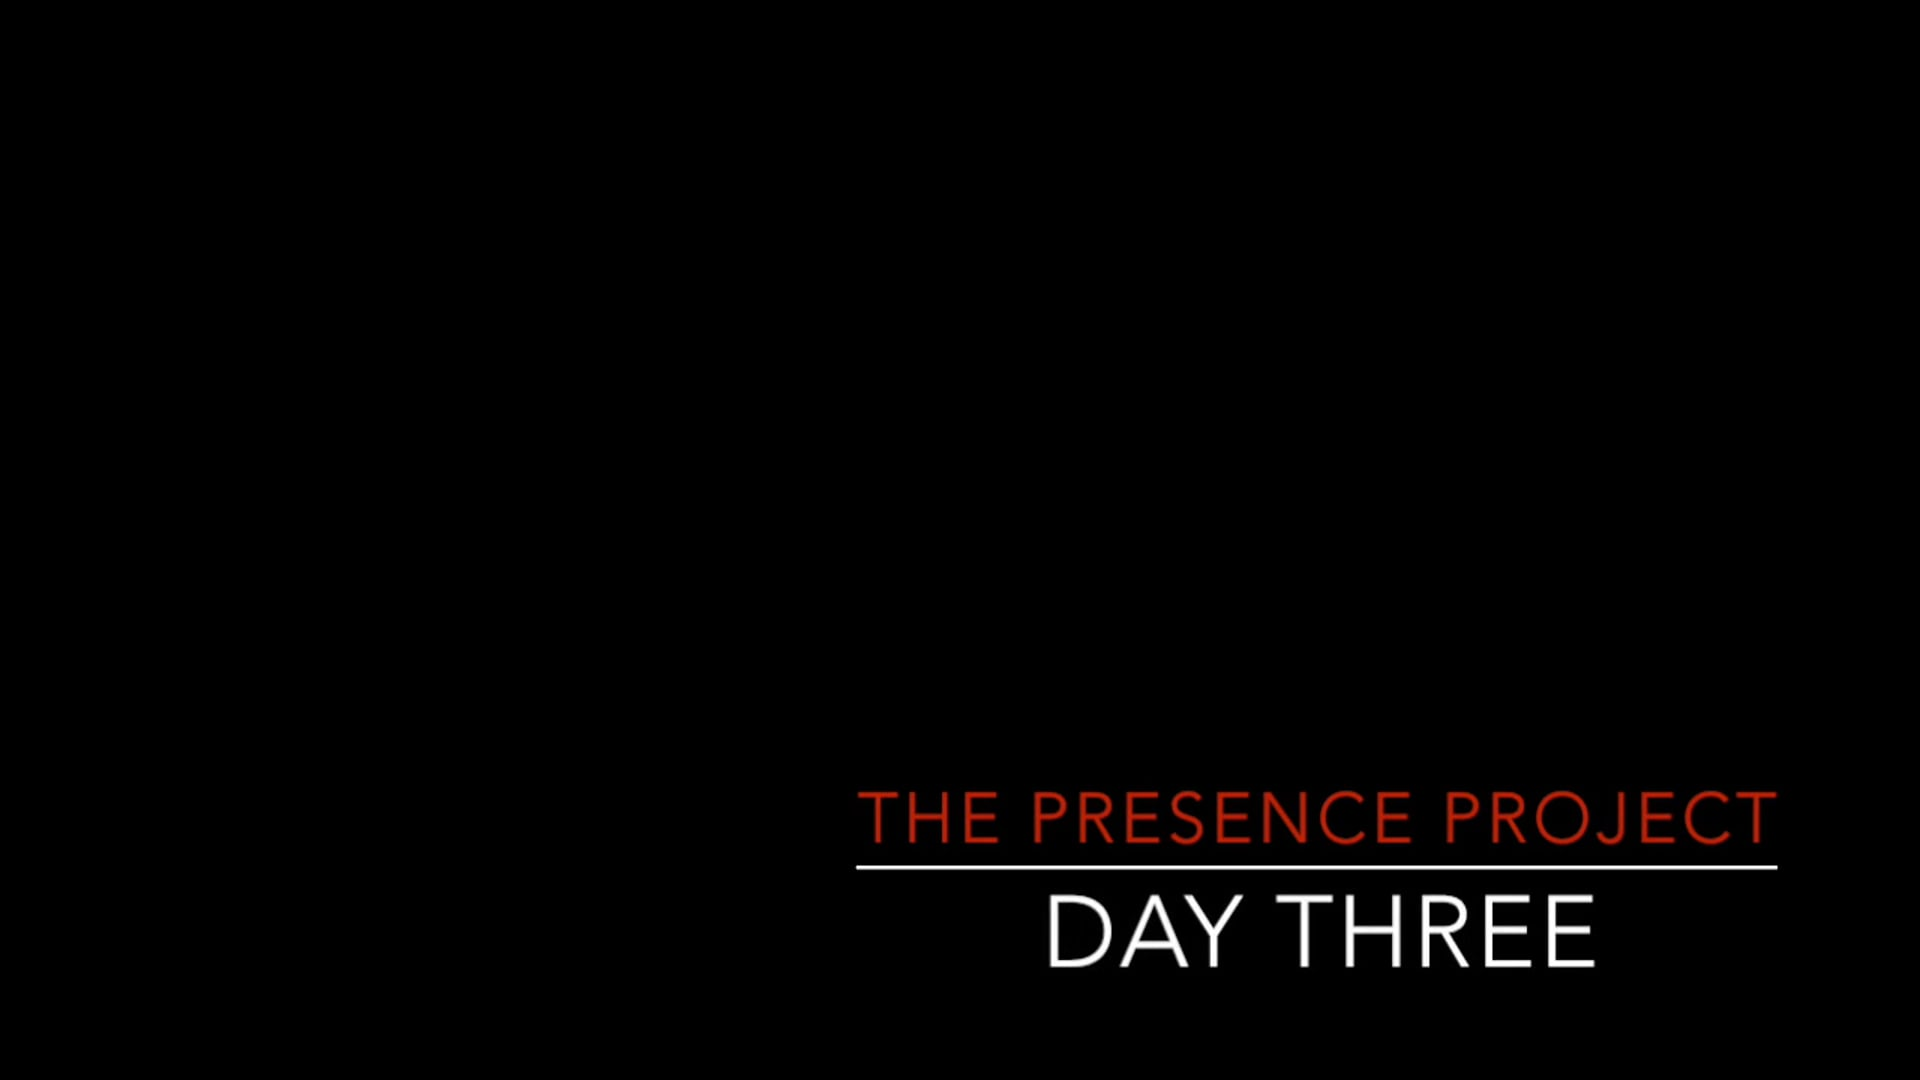 Presence Project, Day 3